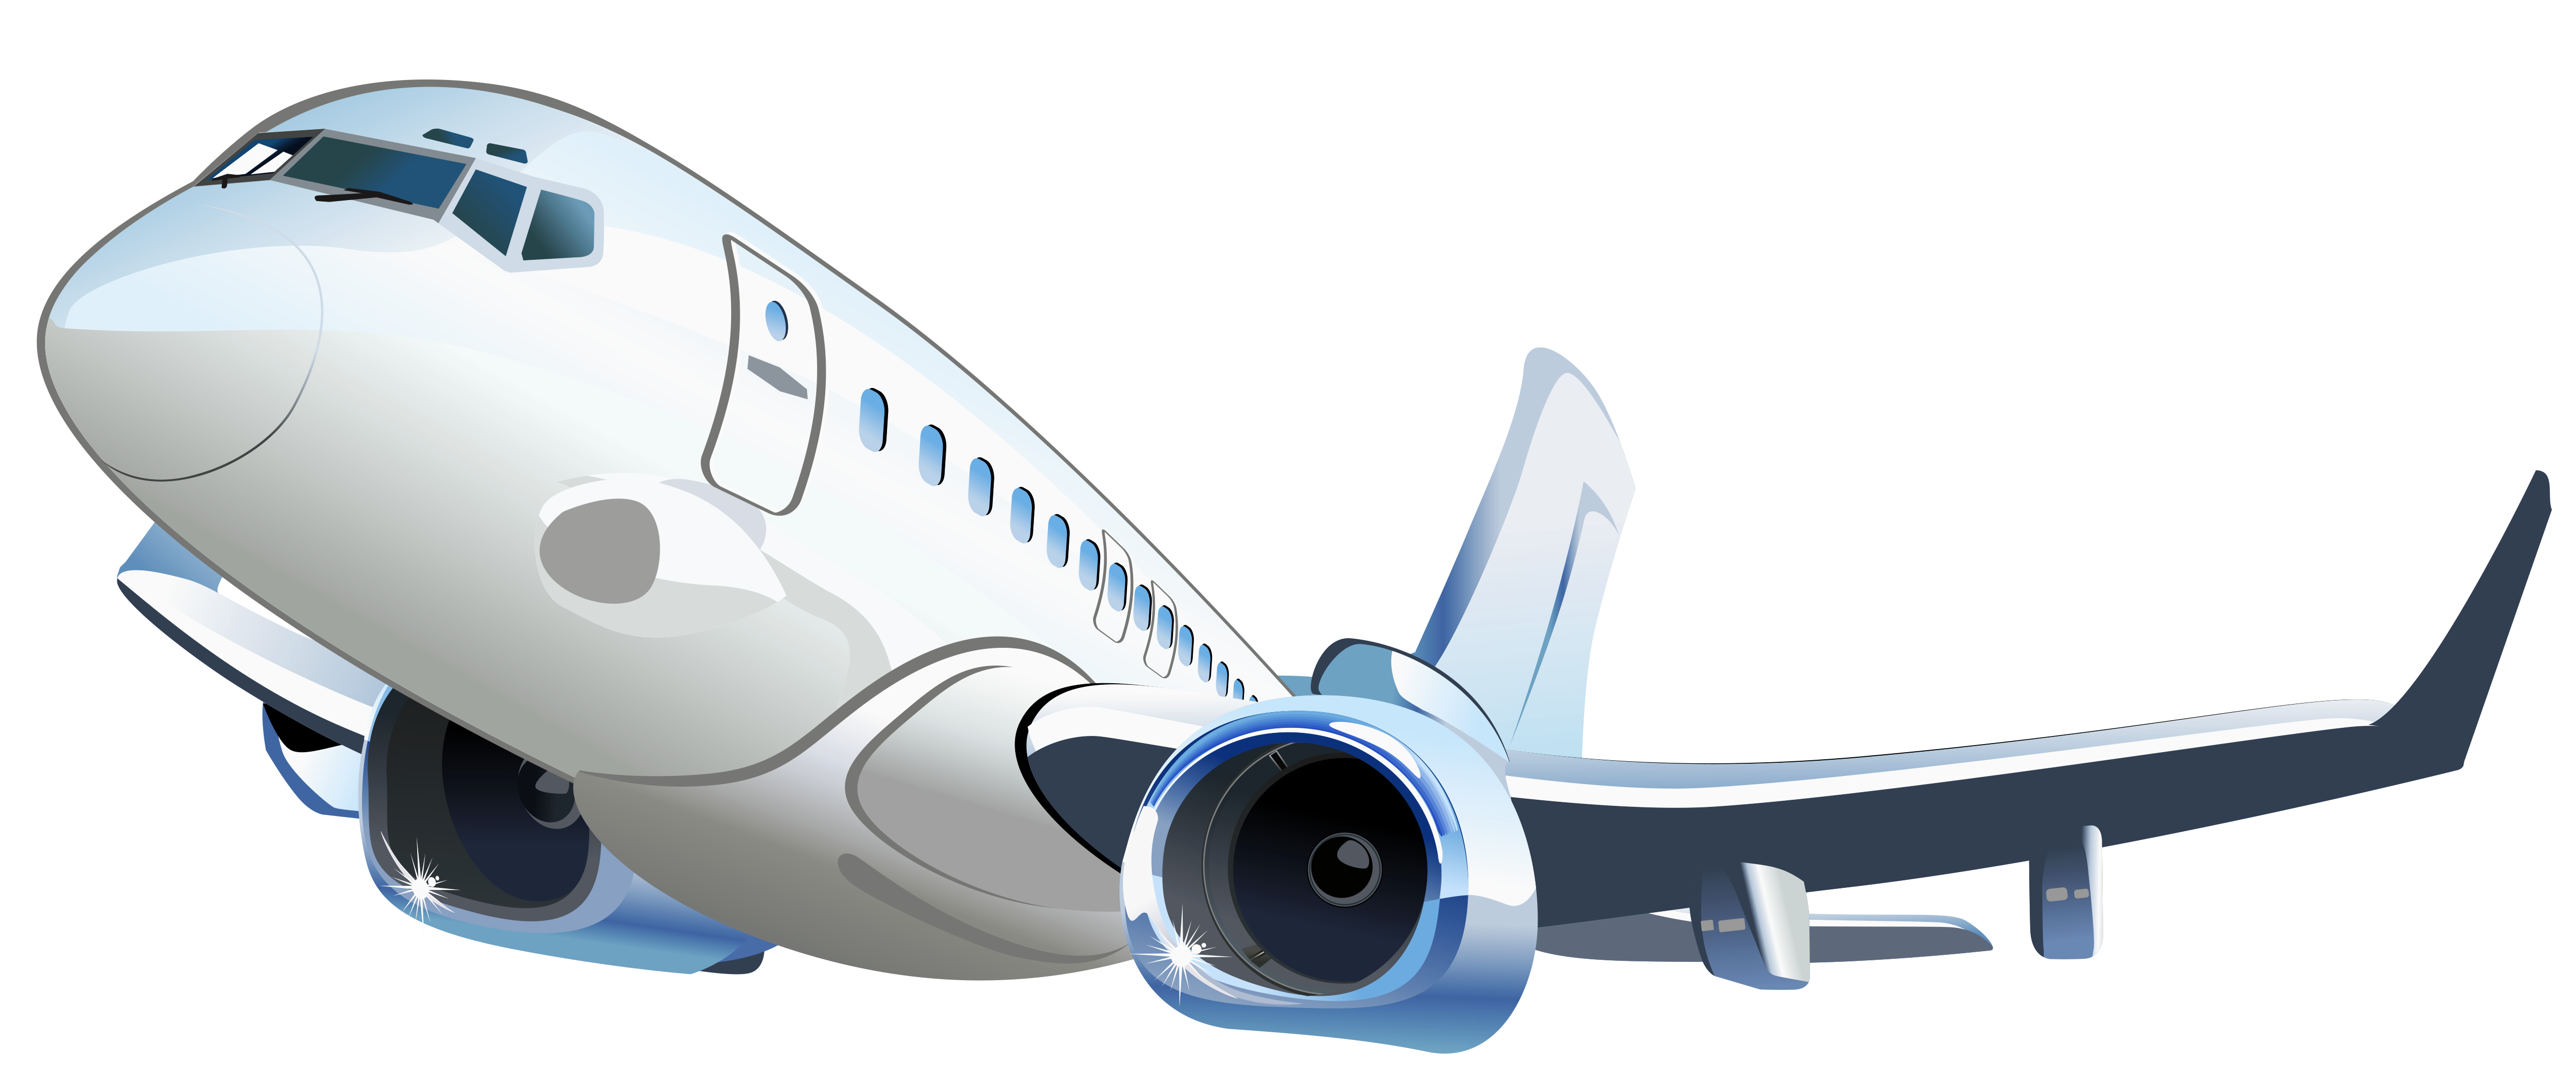 Airport vector aerospace. Download airplane free png